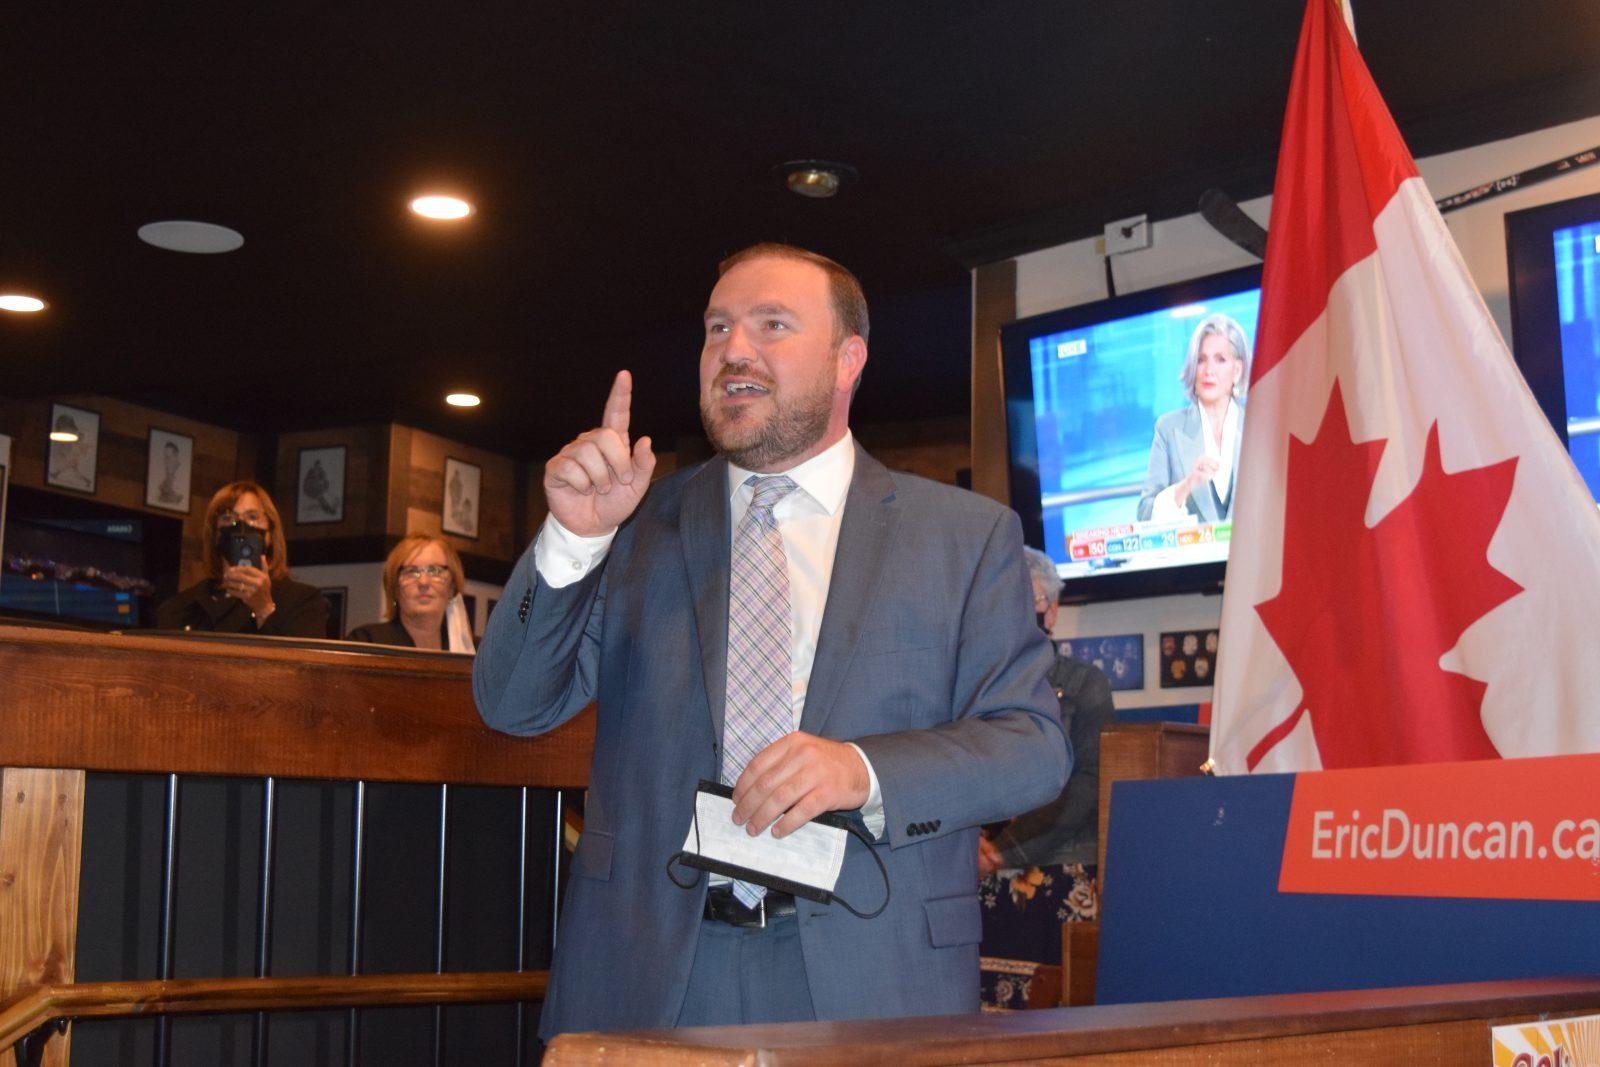 Election 2021: Duncan re-elected; Liberals return with a minority